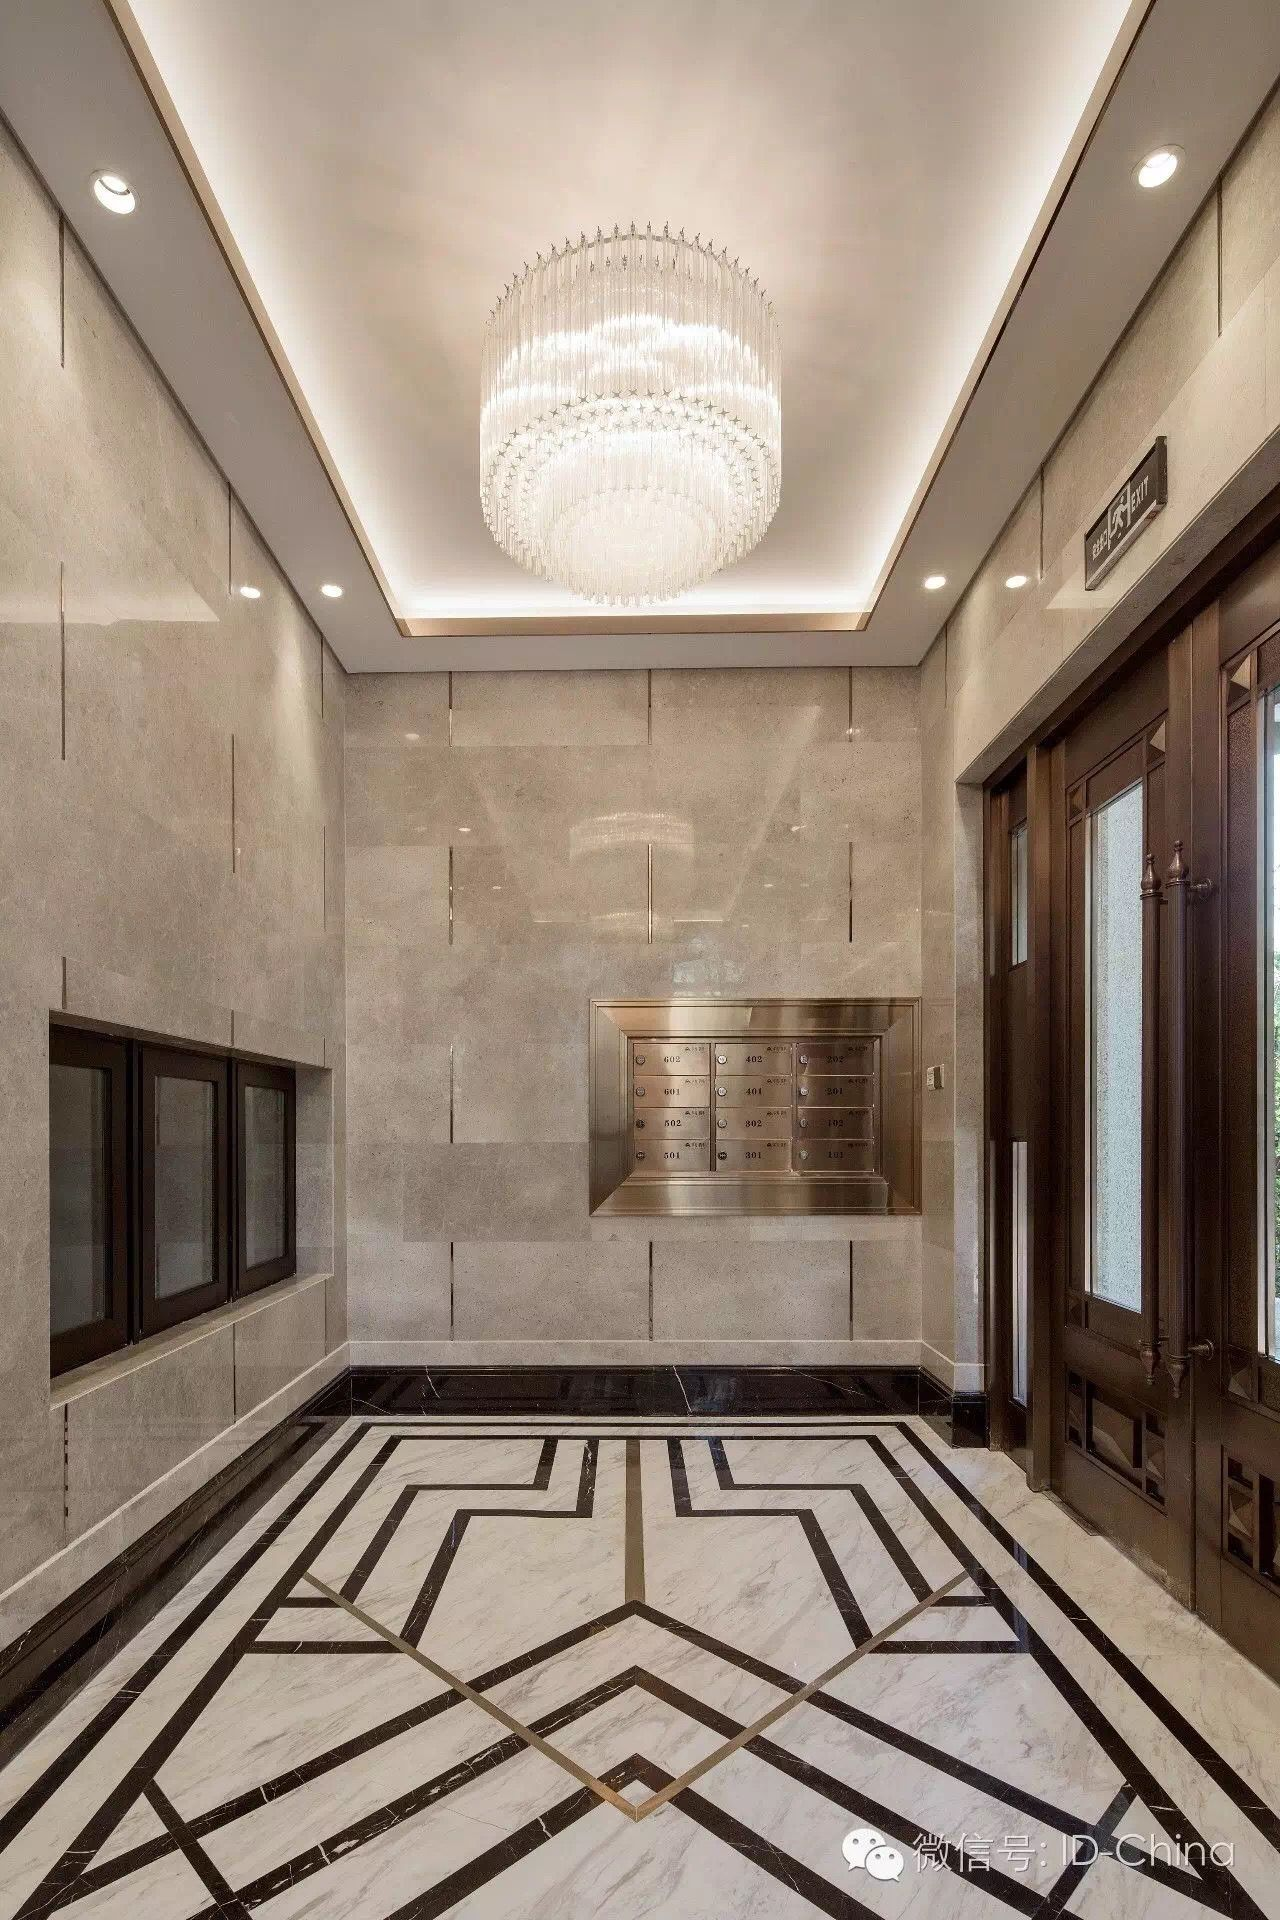 Interior Floor Design Exquisite Retro Lift Lobby Tile Pinterest Foyer